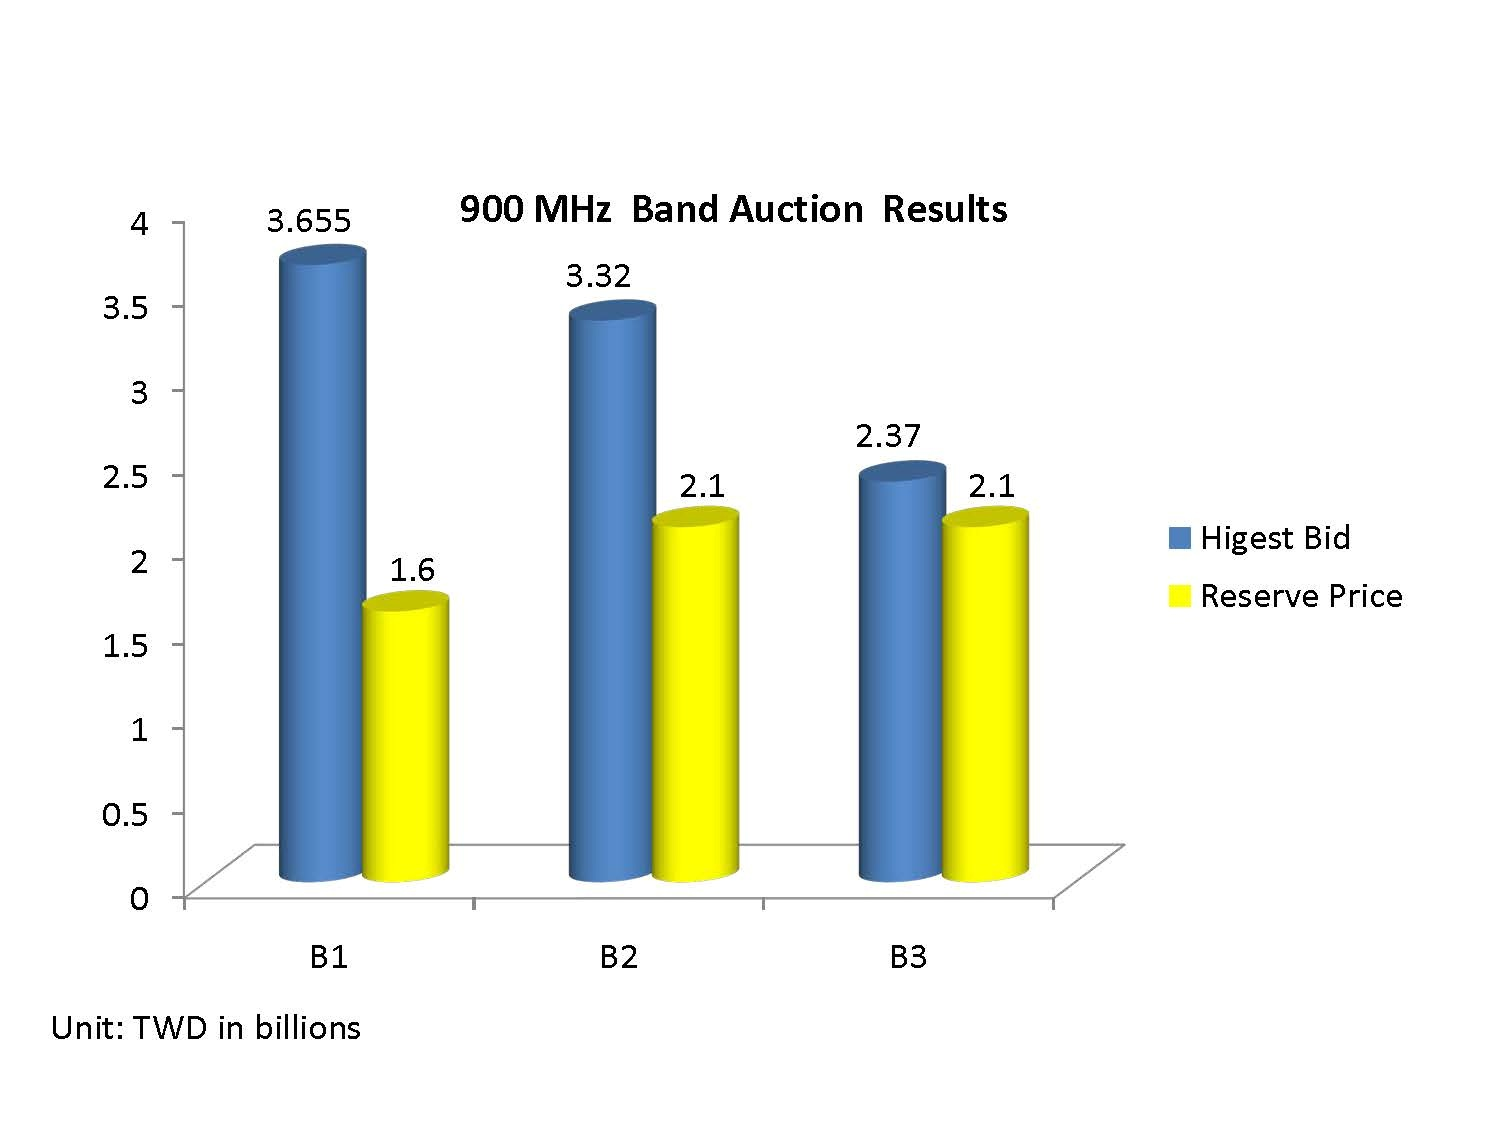 900 MHz Band Auction Results